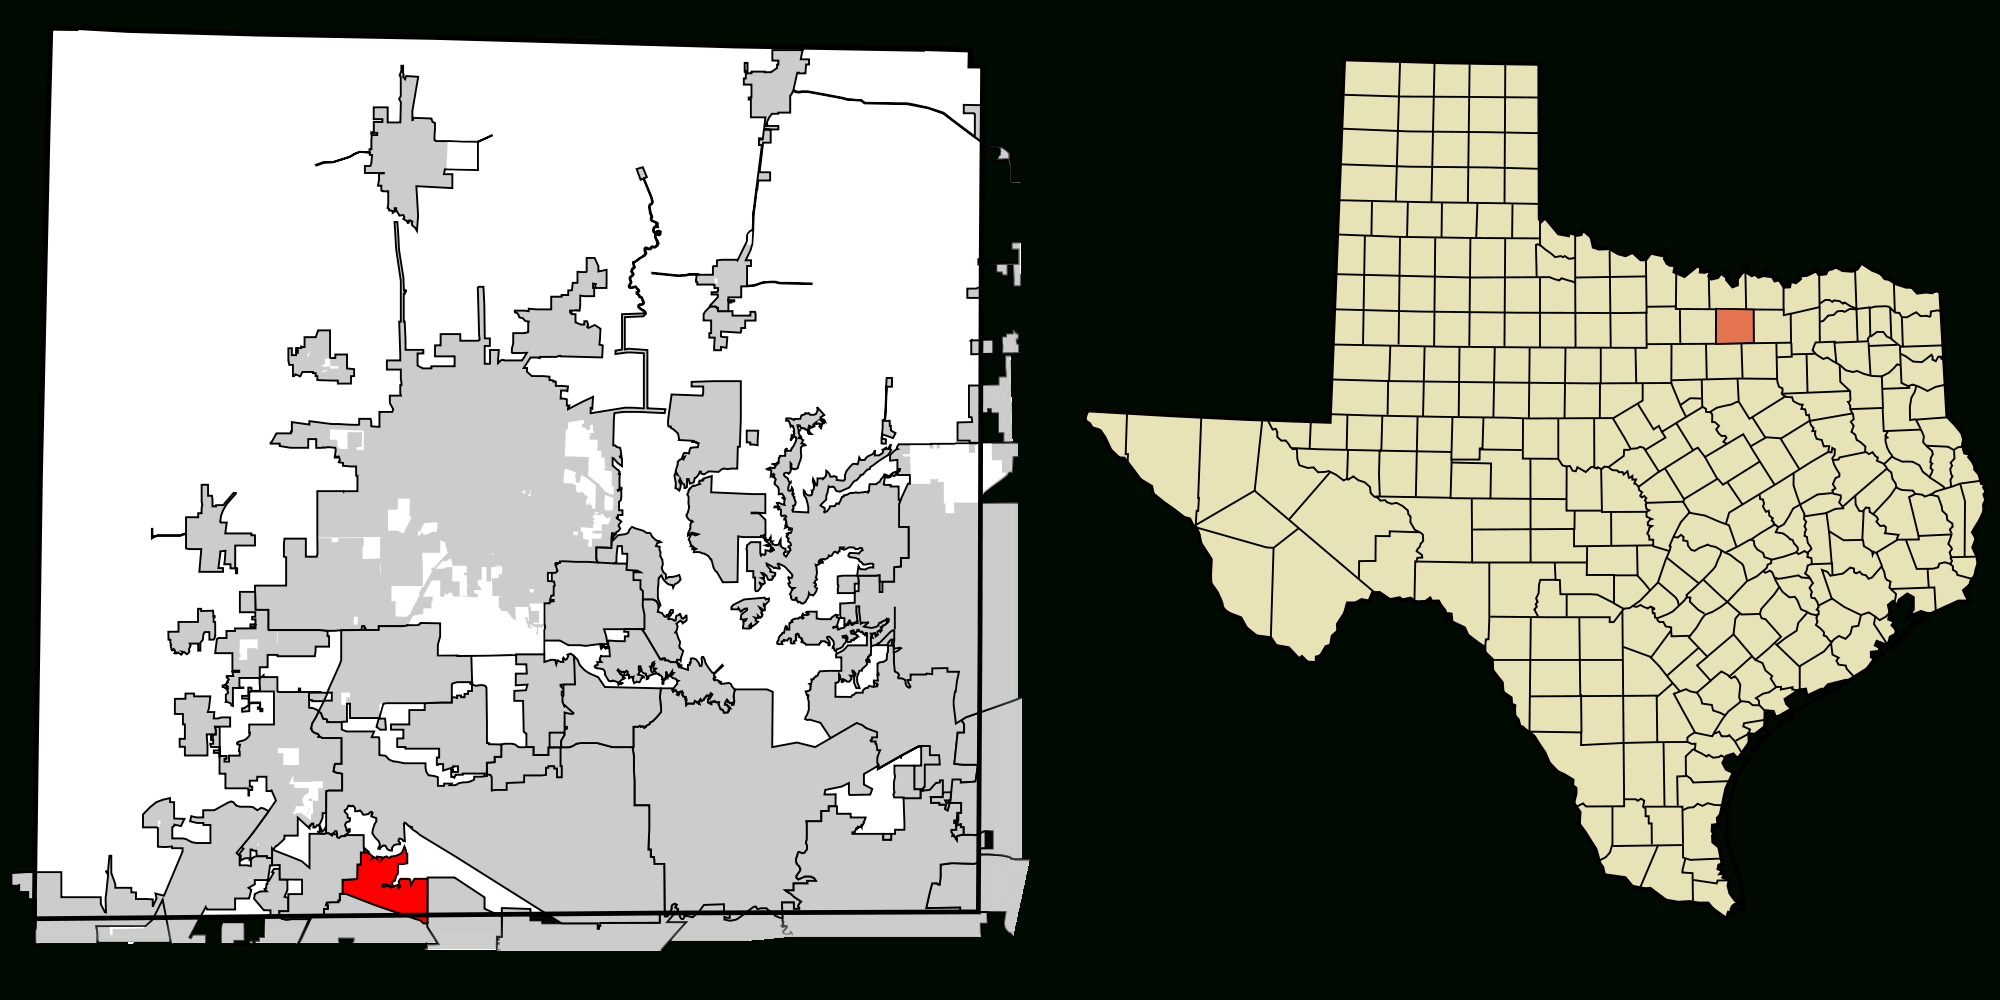 File:denton County Texas Incorporated Areas Trophy Club Highlighted - Trophy Club Texas Map